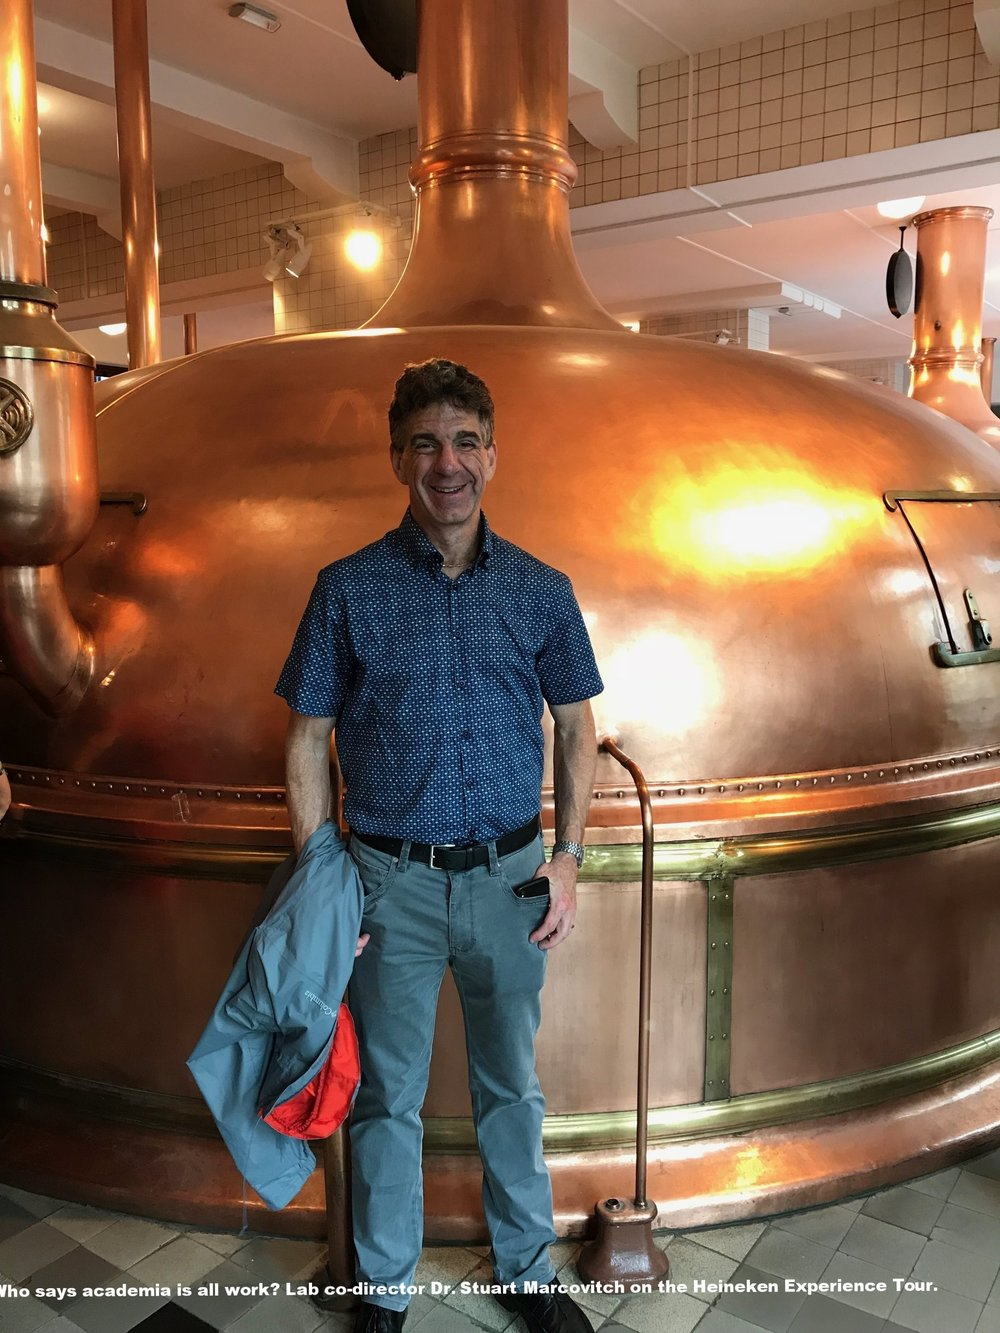 Who says academia is all work? Here lab co-director Dr. Stuart Marcovitch is enjoying the Heineken Experience Tour.